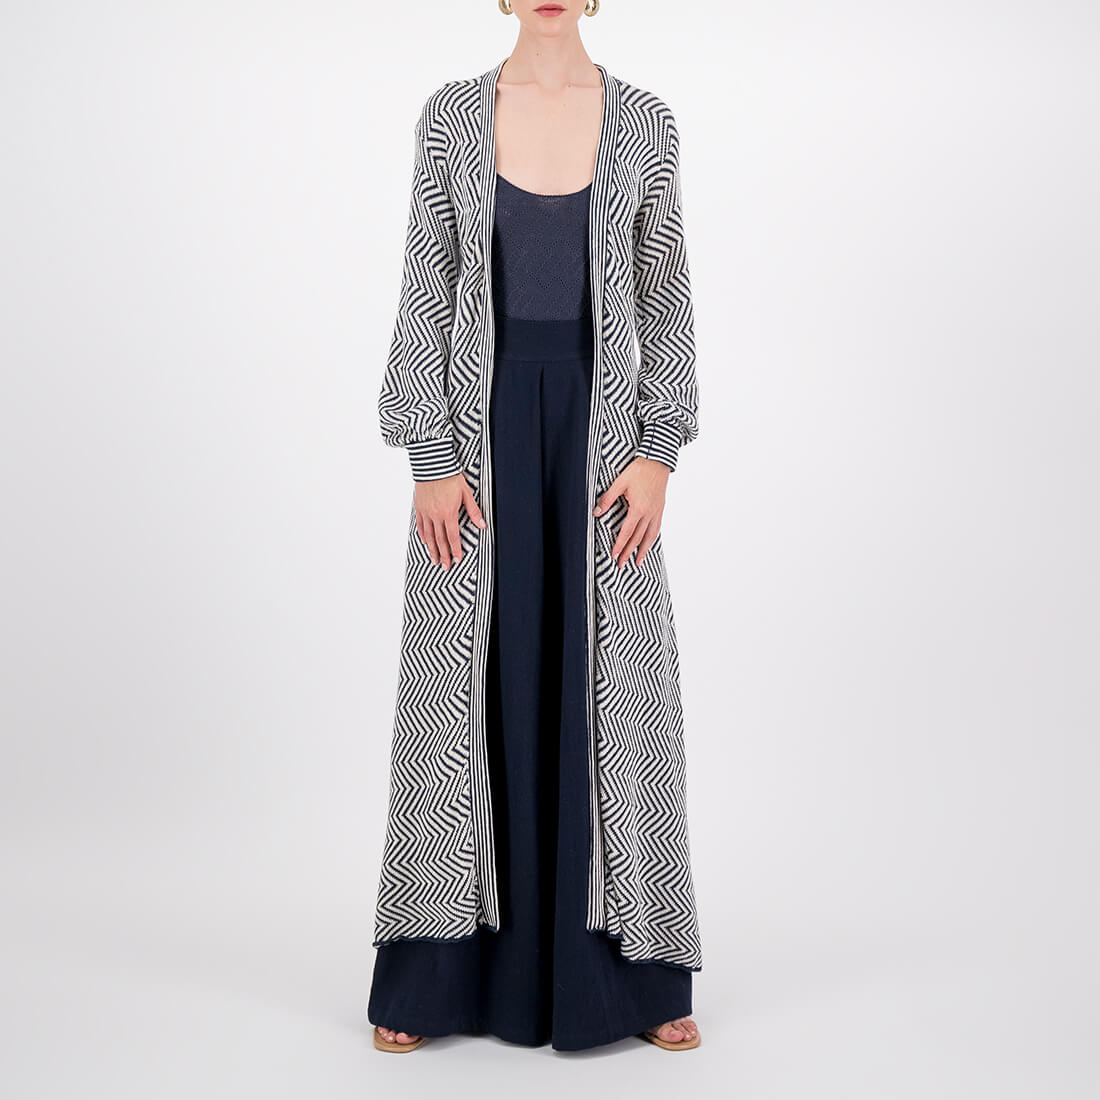 Machine-knit, floor-length kimono with long sleeves 2